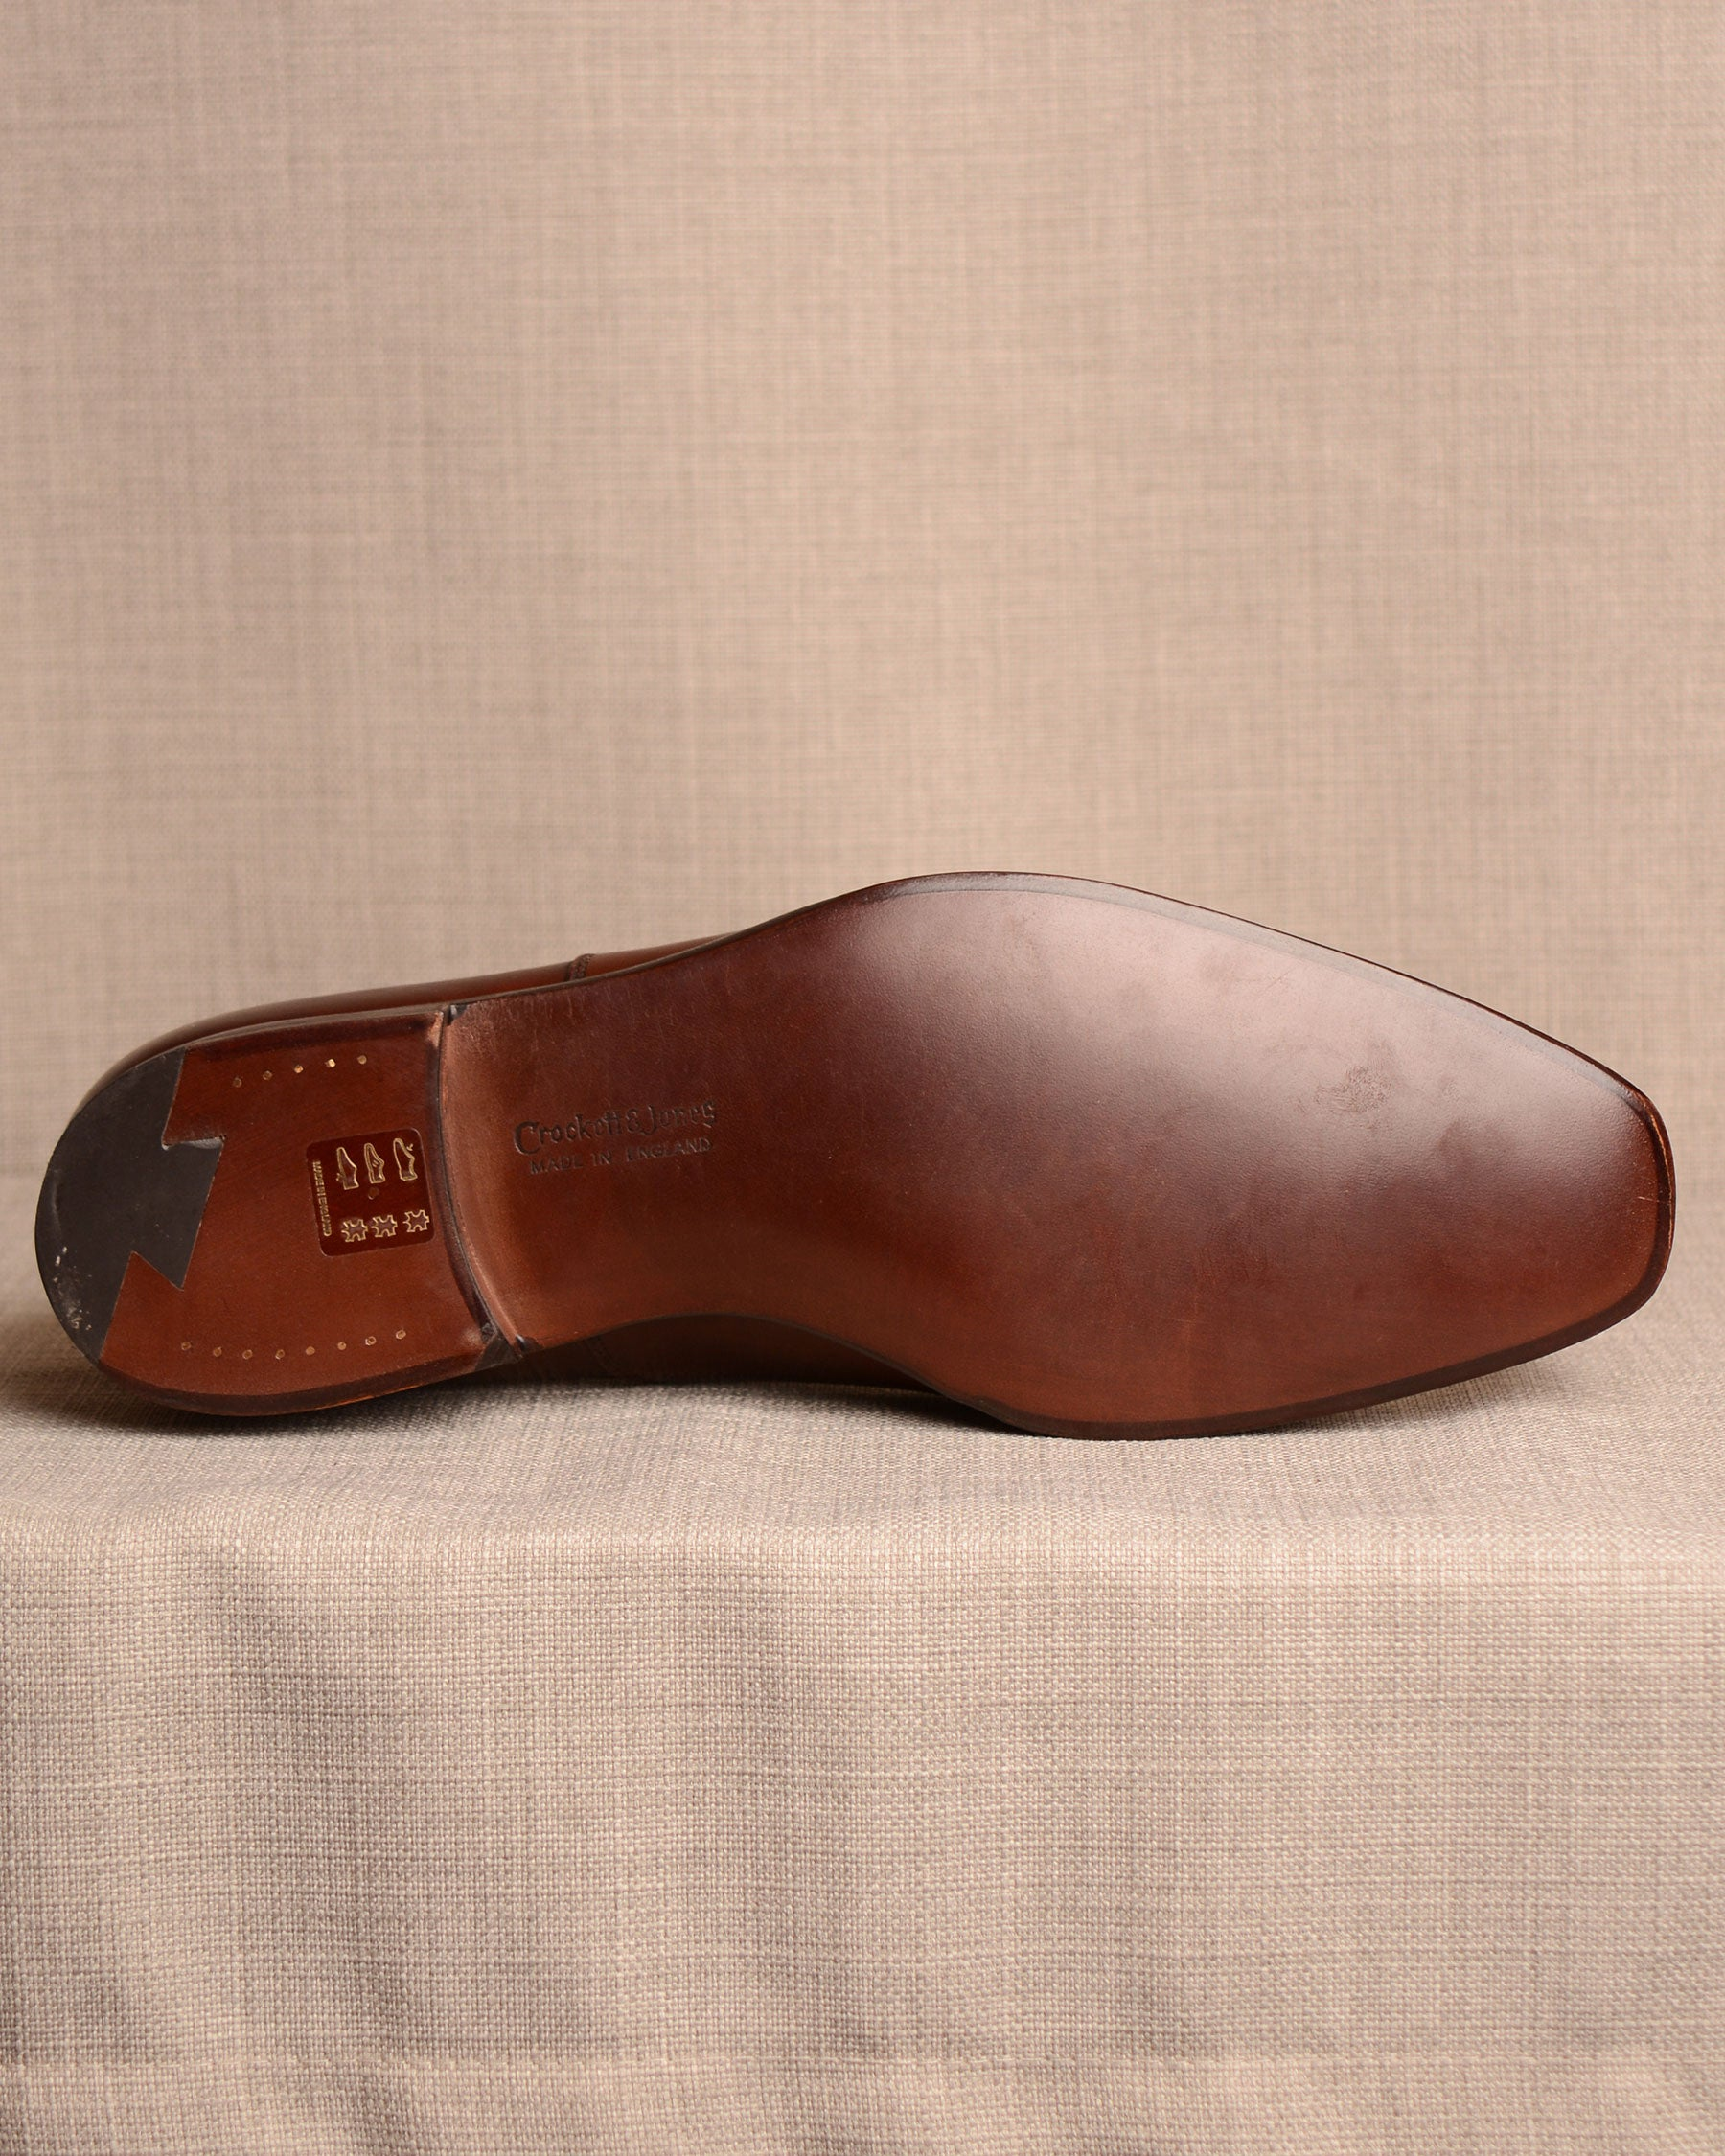 Crockett & Jones - Belgrave Chestnut